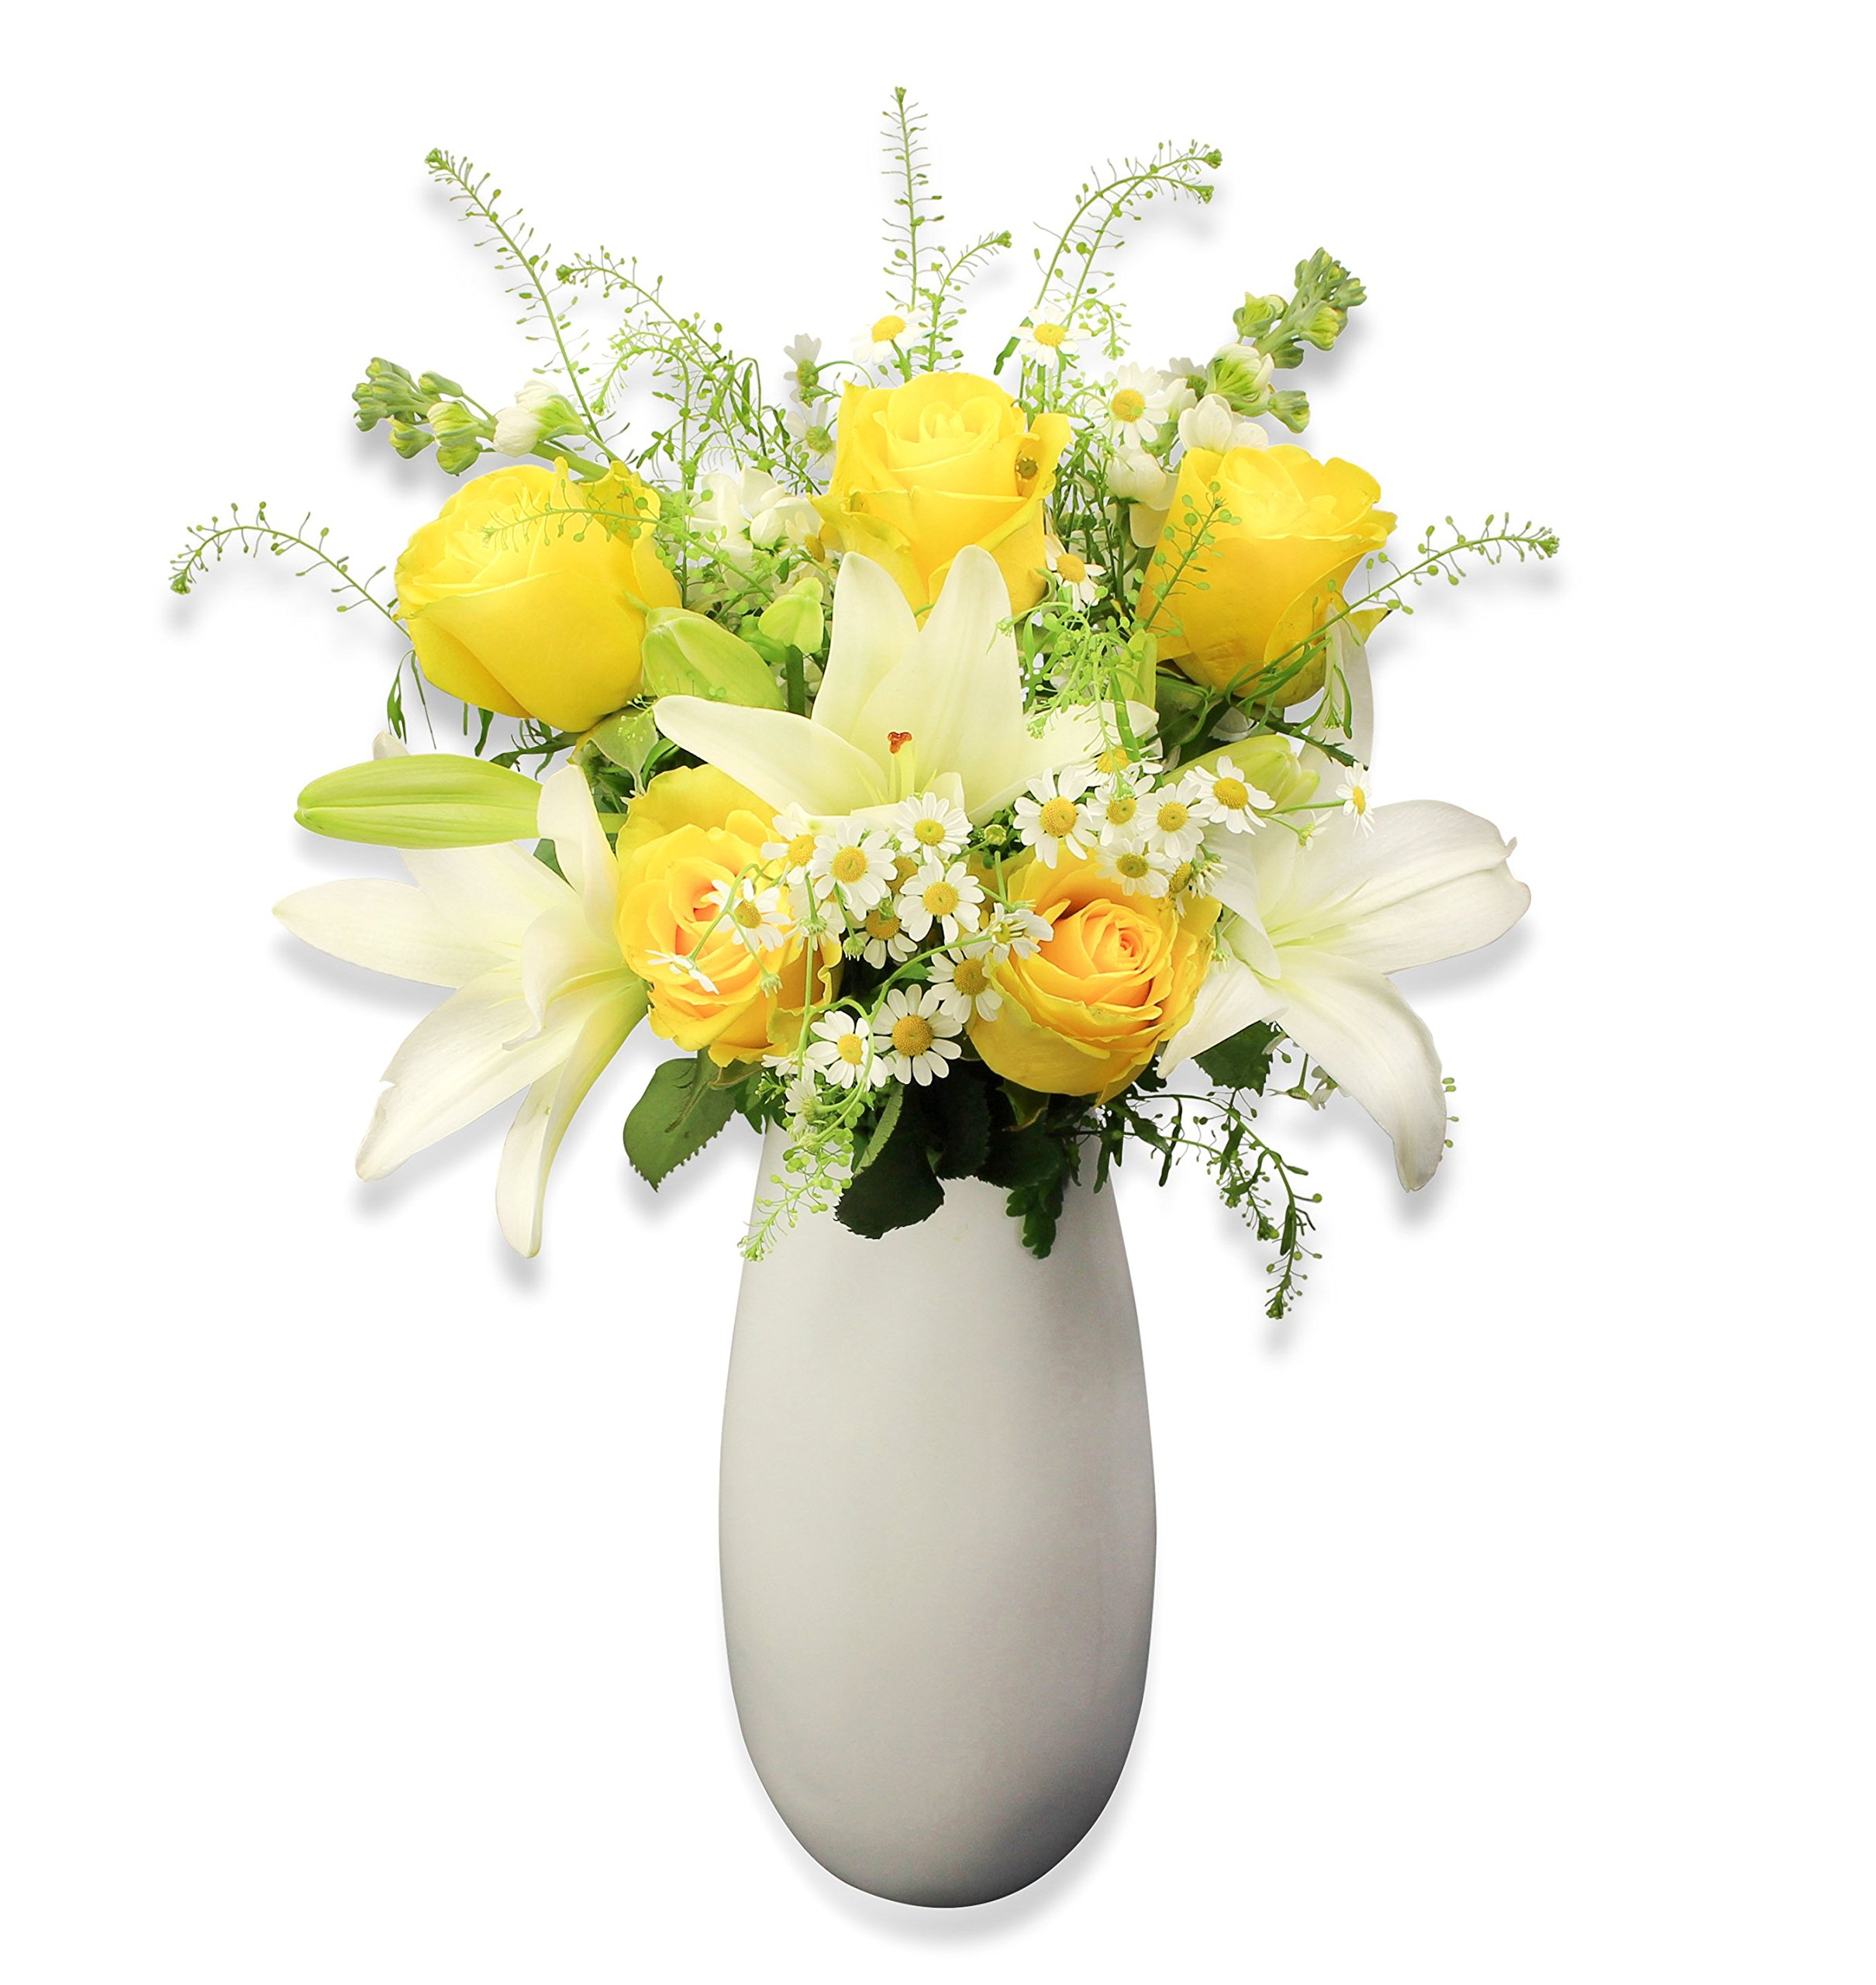 Fresh Flower Delivery FREE Handwritten Greeting Card Send Premium Flowers Beautifully Wrapped Delivered By Post Uplifting Bouquet Perfect